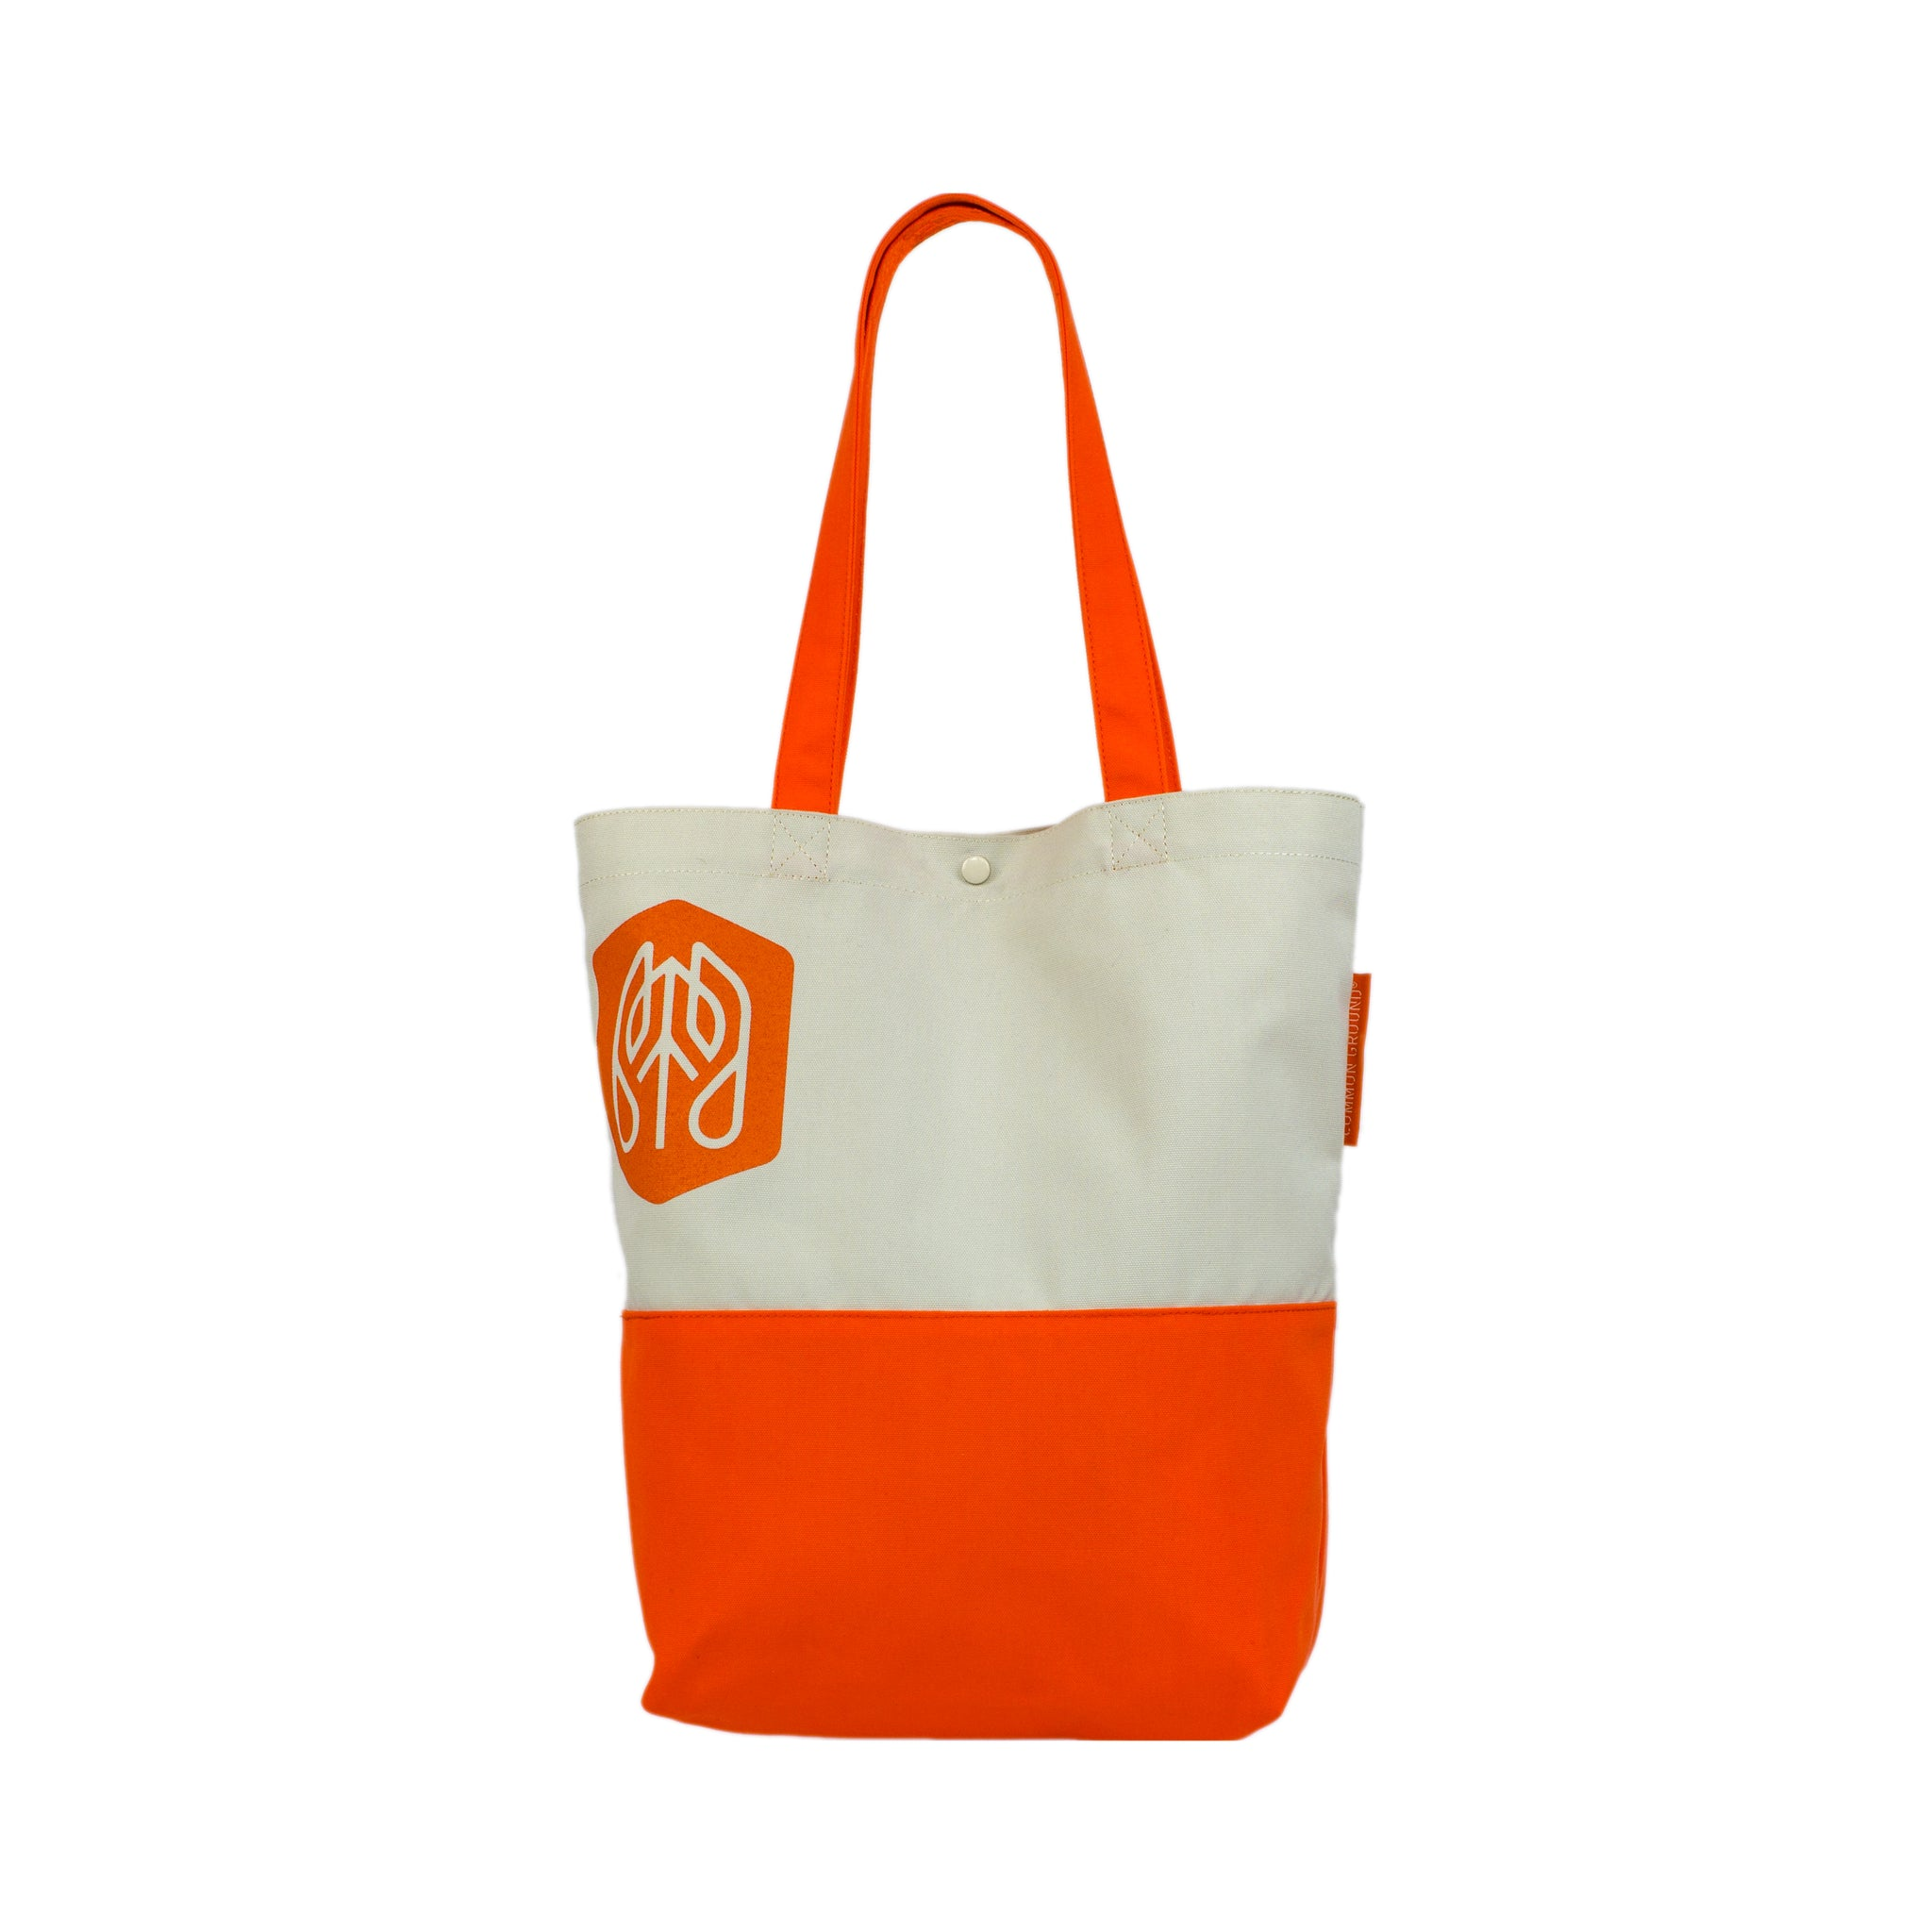 Vibrant_Orange - Common Ground Utility Tote Bag Front View